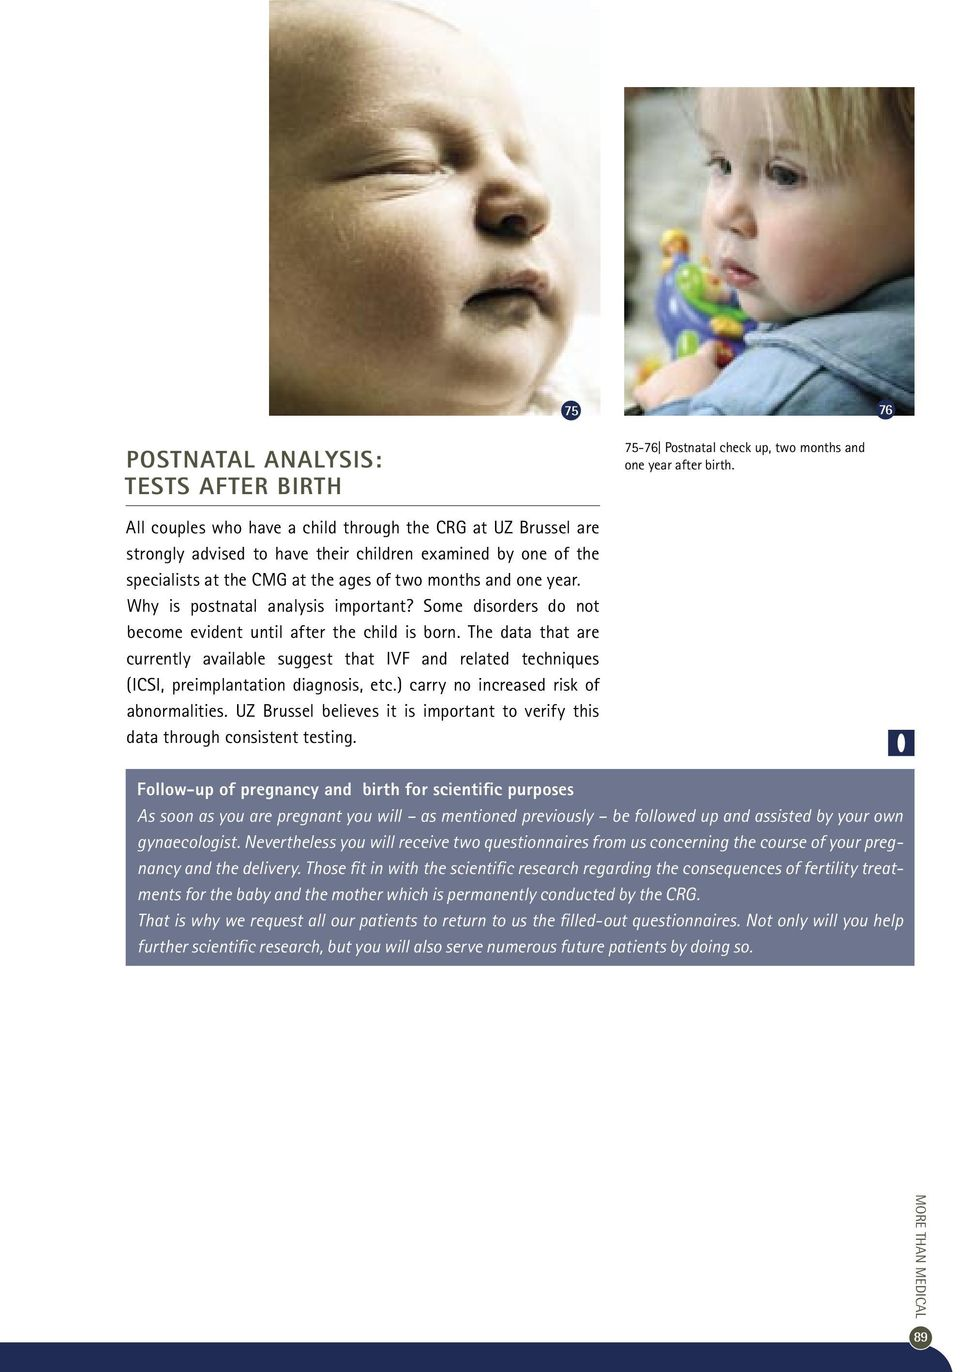 Why is postnatal analysis important? Some disorders do not become evident until after the child is born.